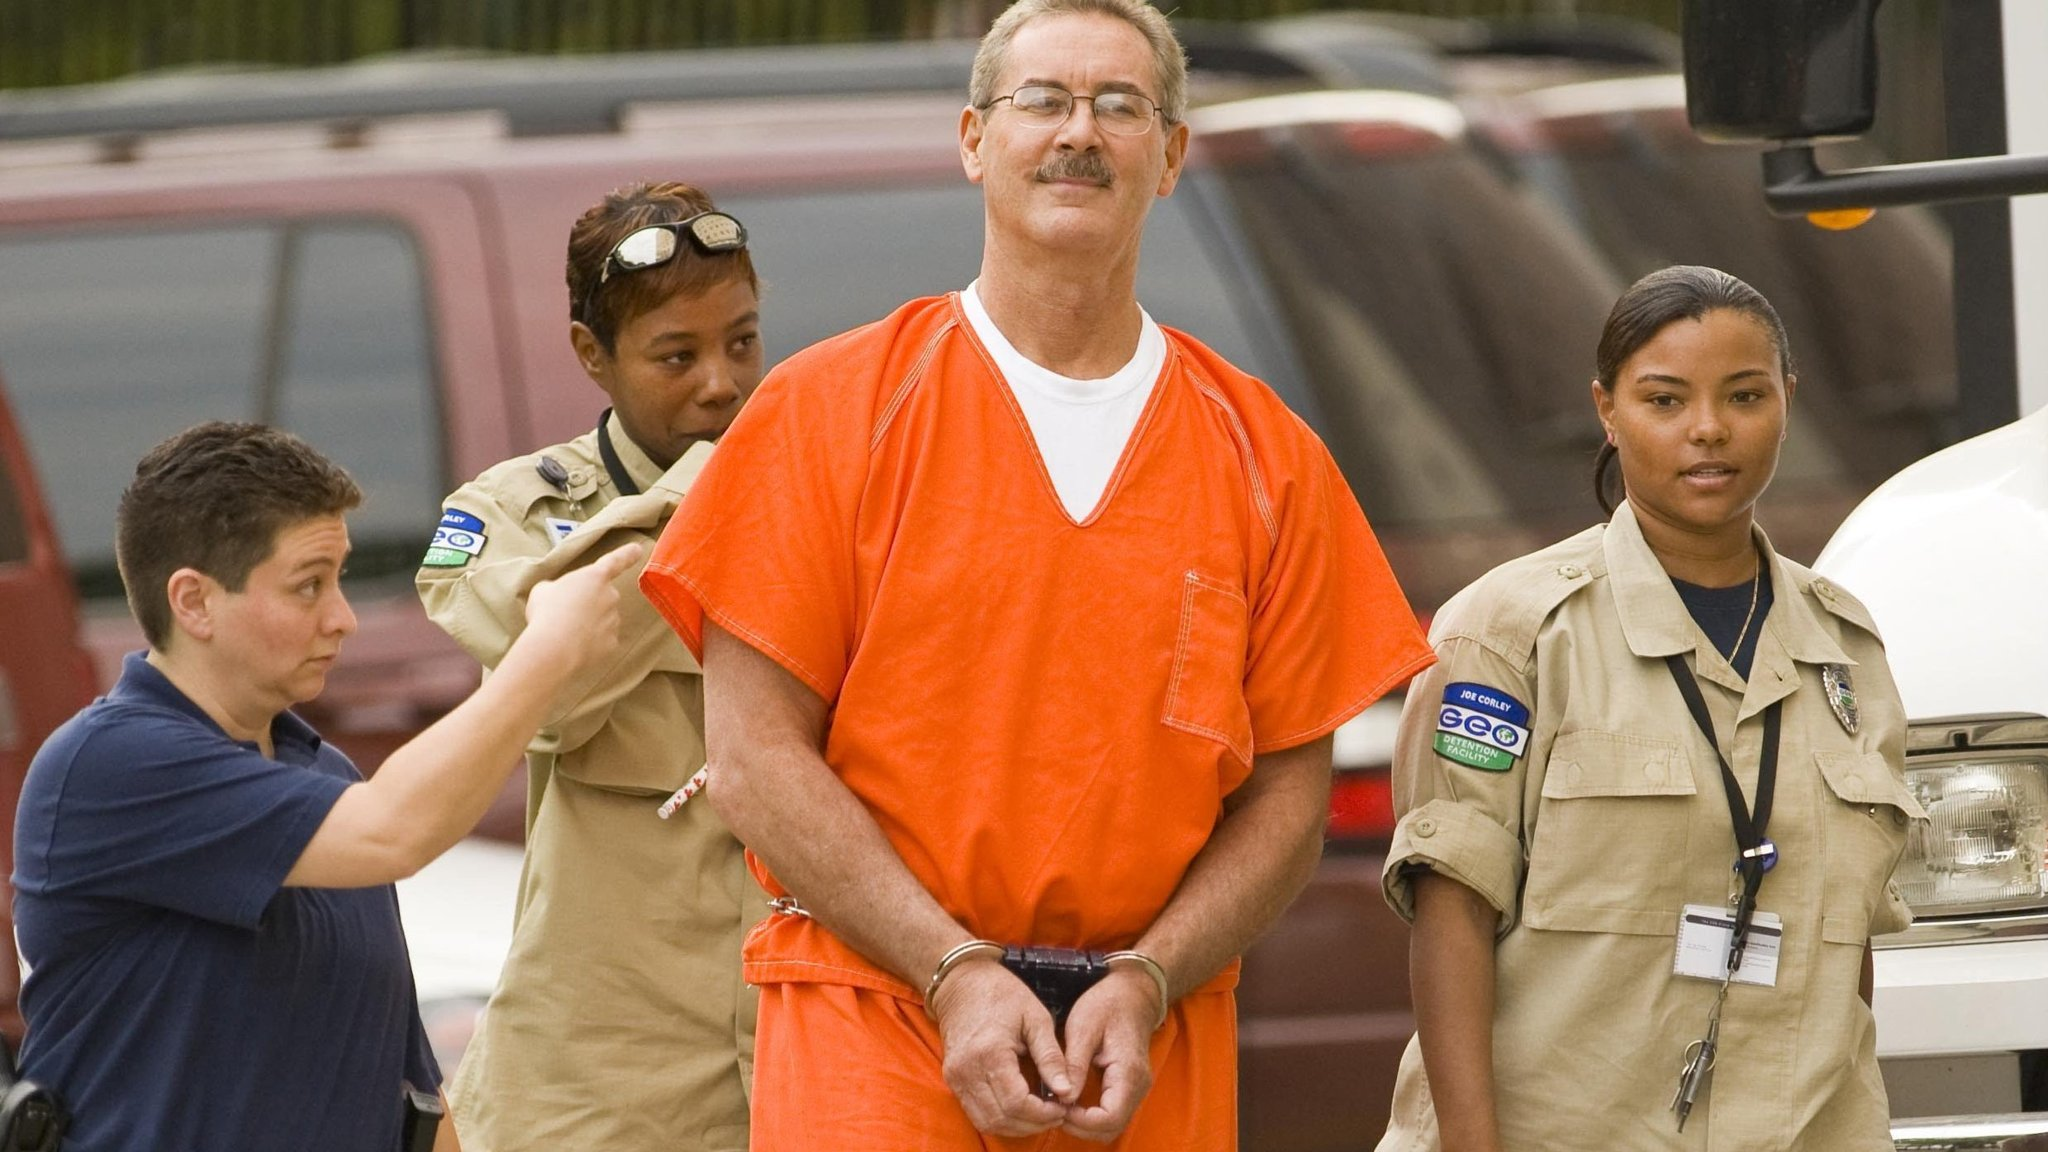 My pen pals, the white-collar criminals in jail | Financial